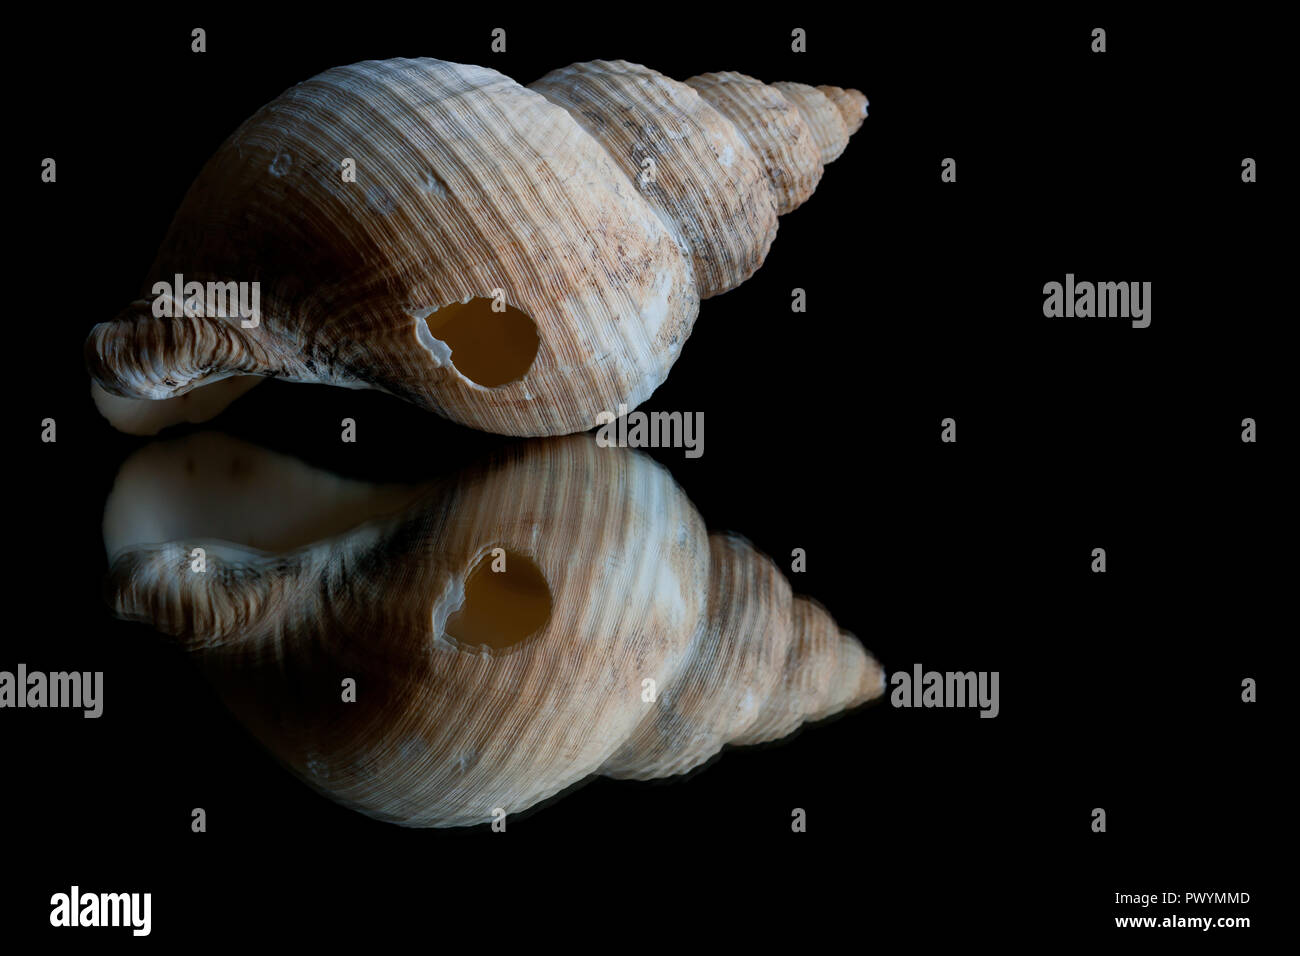 High contrast image and reflection of a seashell with black background as space for text Stock Photo